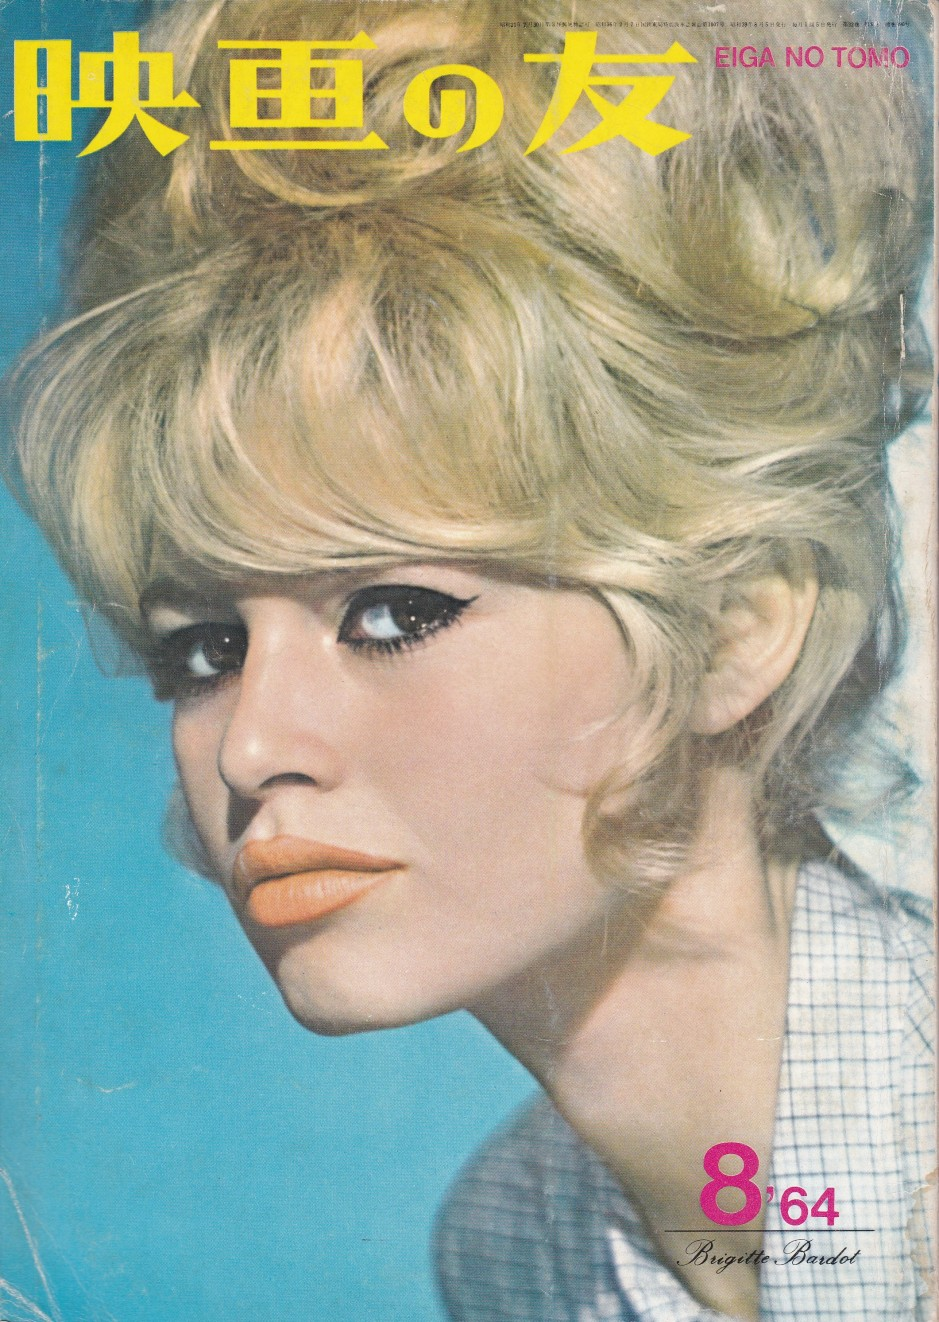 Eiga no Tomo_August 1964_Brigette Bardot cover